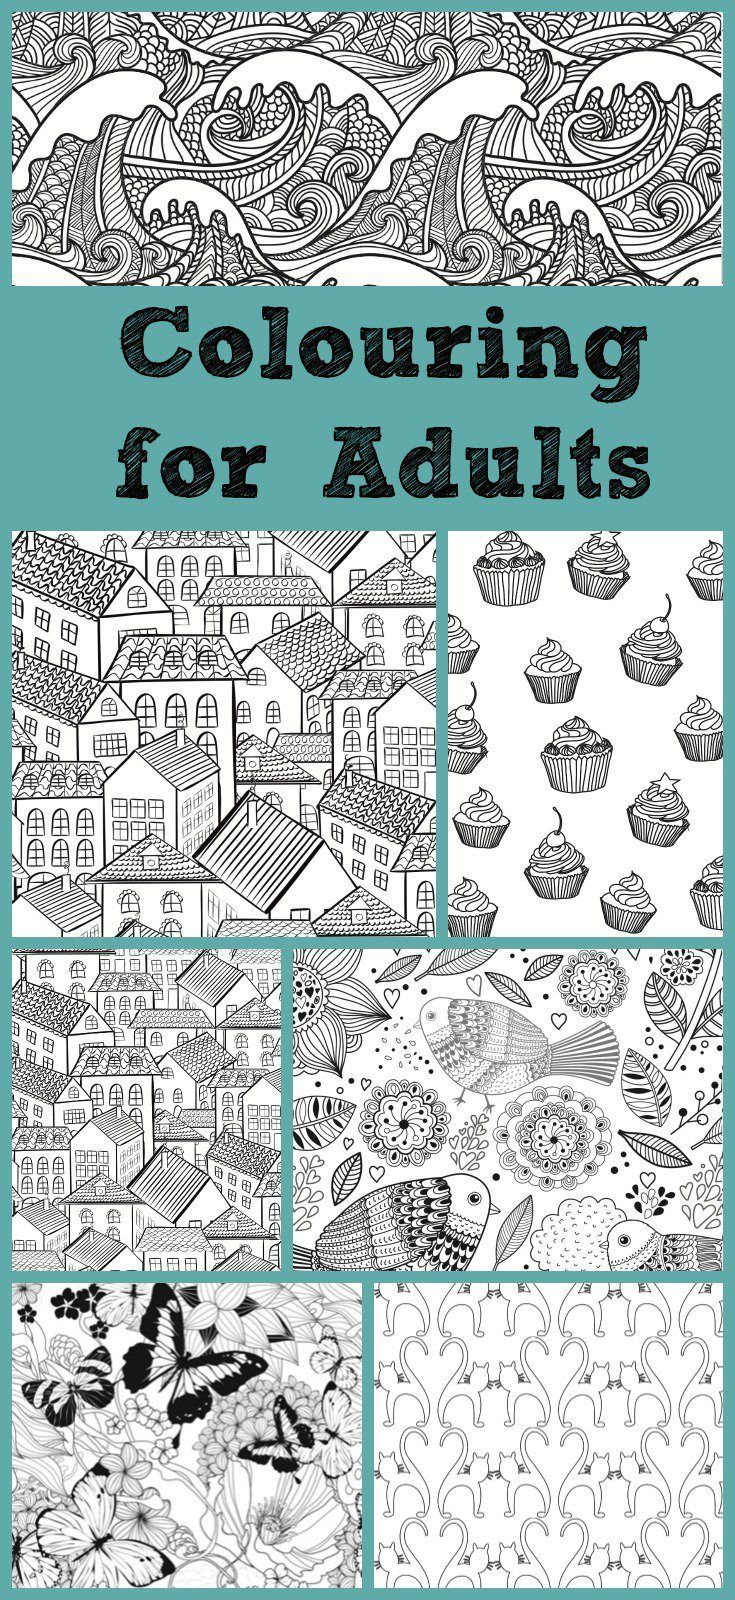 51 best Adult Coloring pages images on Pinterest | Coloring books ...